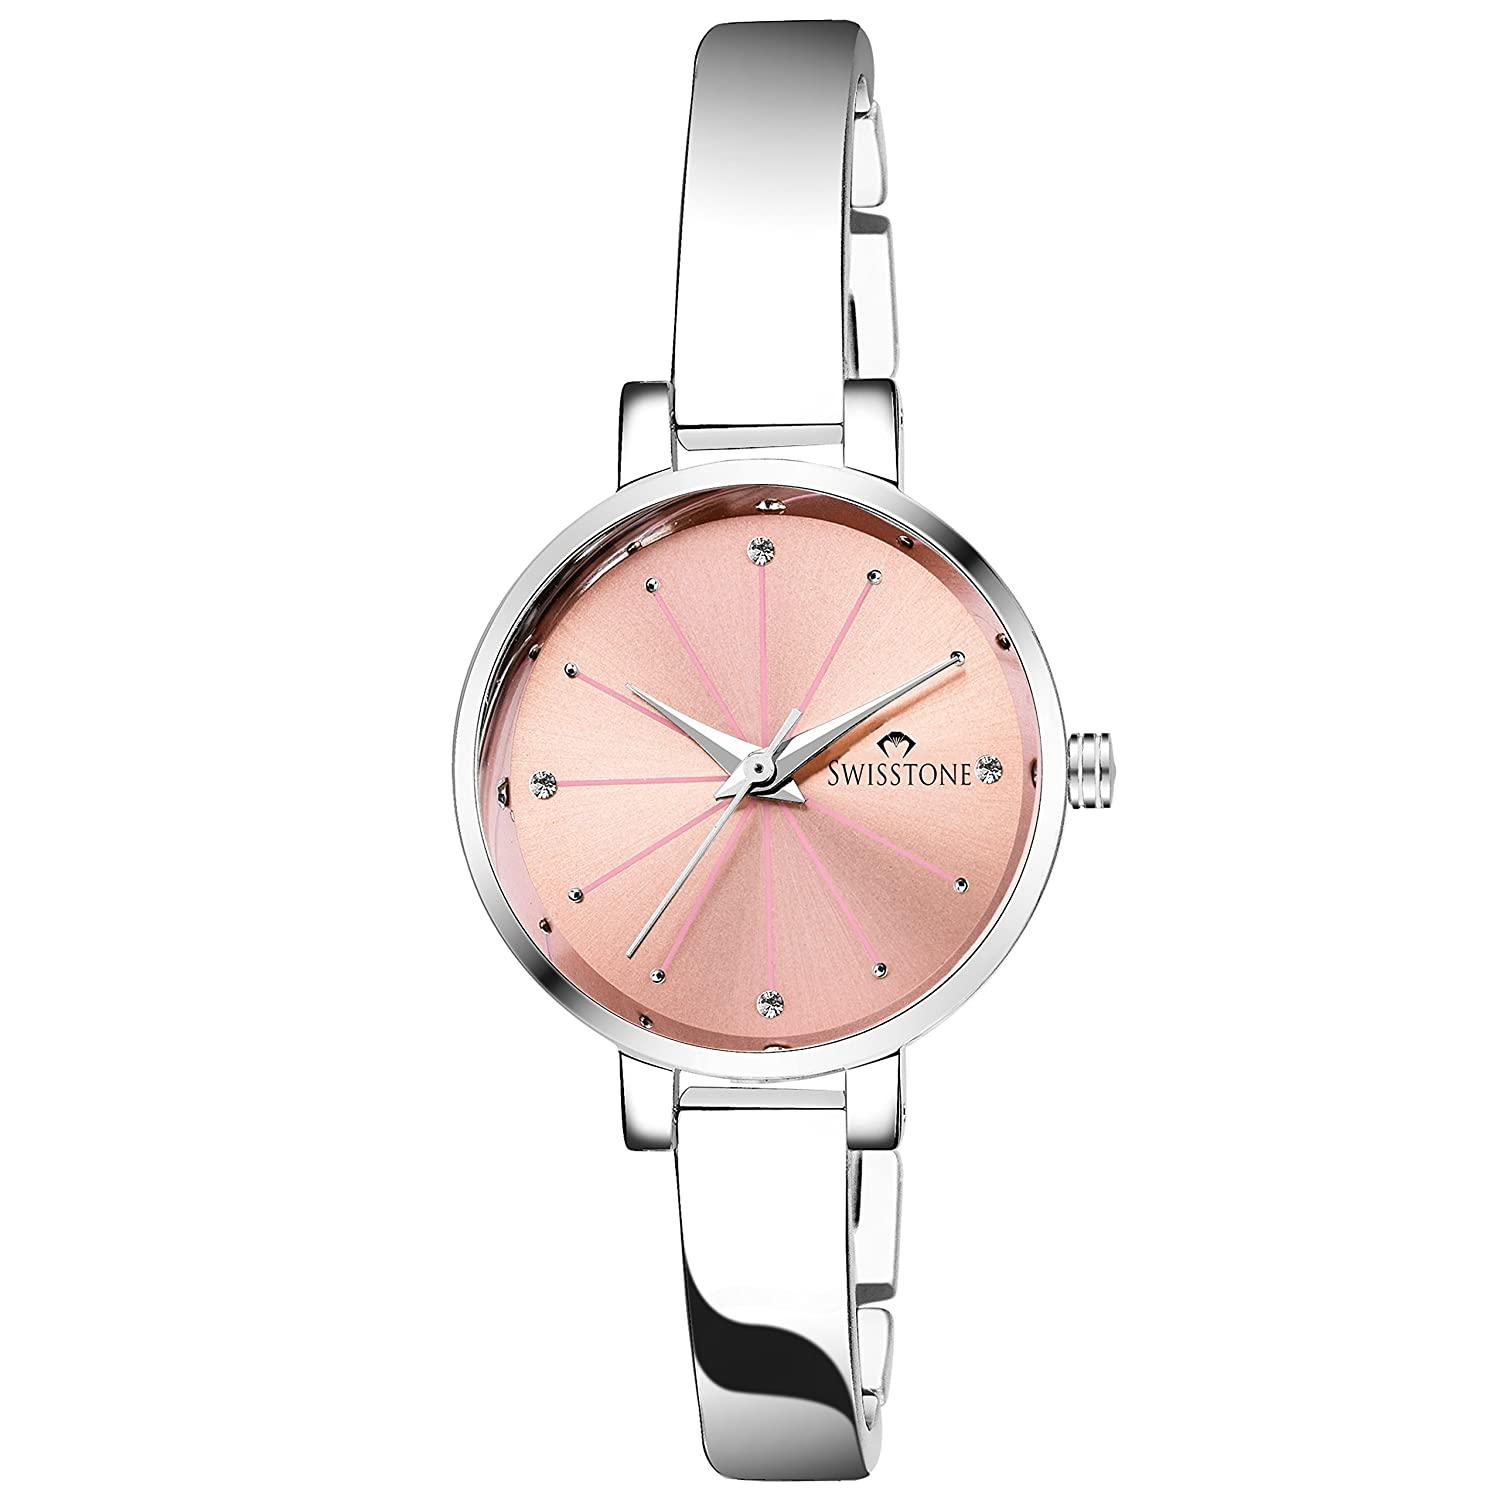 SWISSTONE Analogue Pink Dial Silver Plated Bracelet Women's Wrist Watch@Rs.439